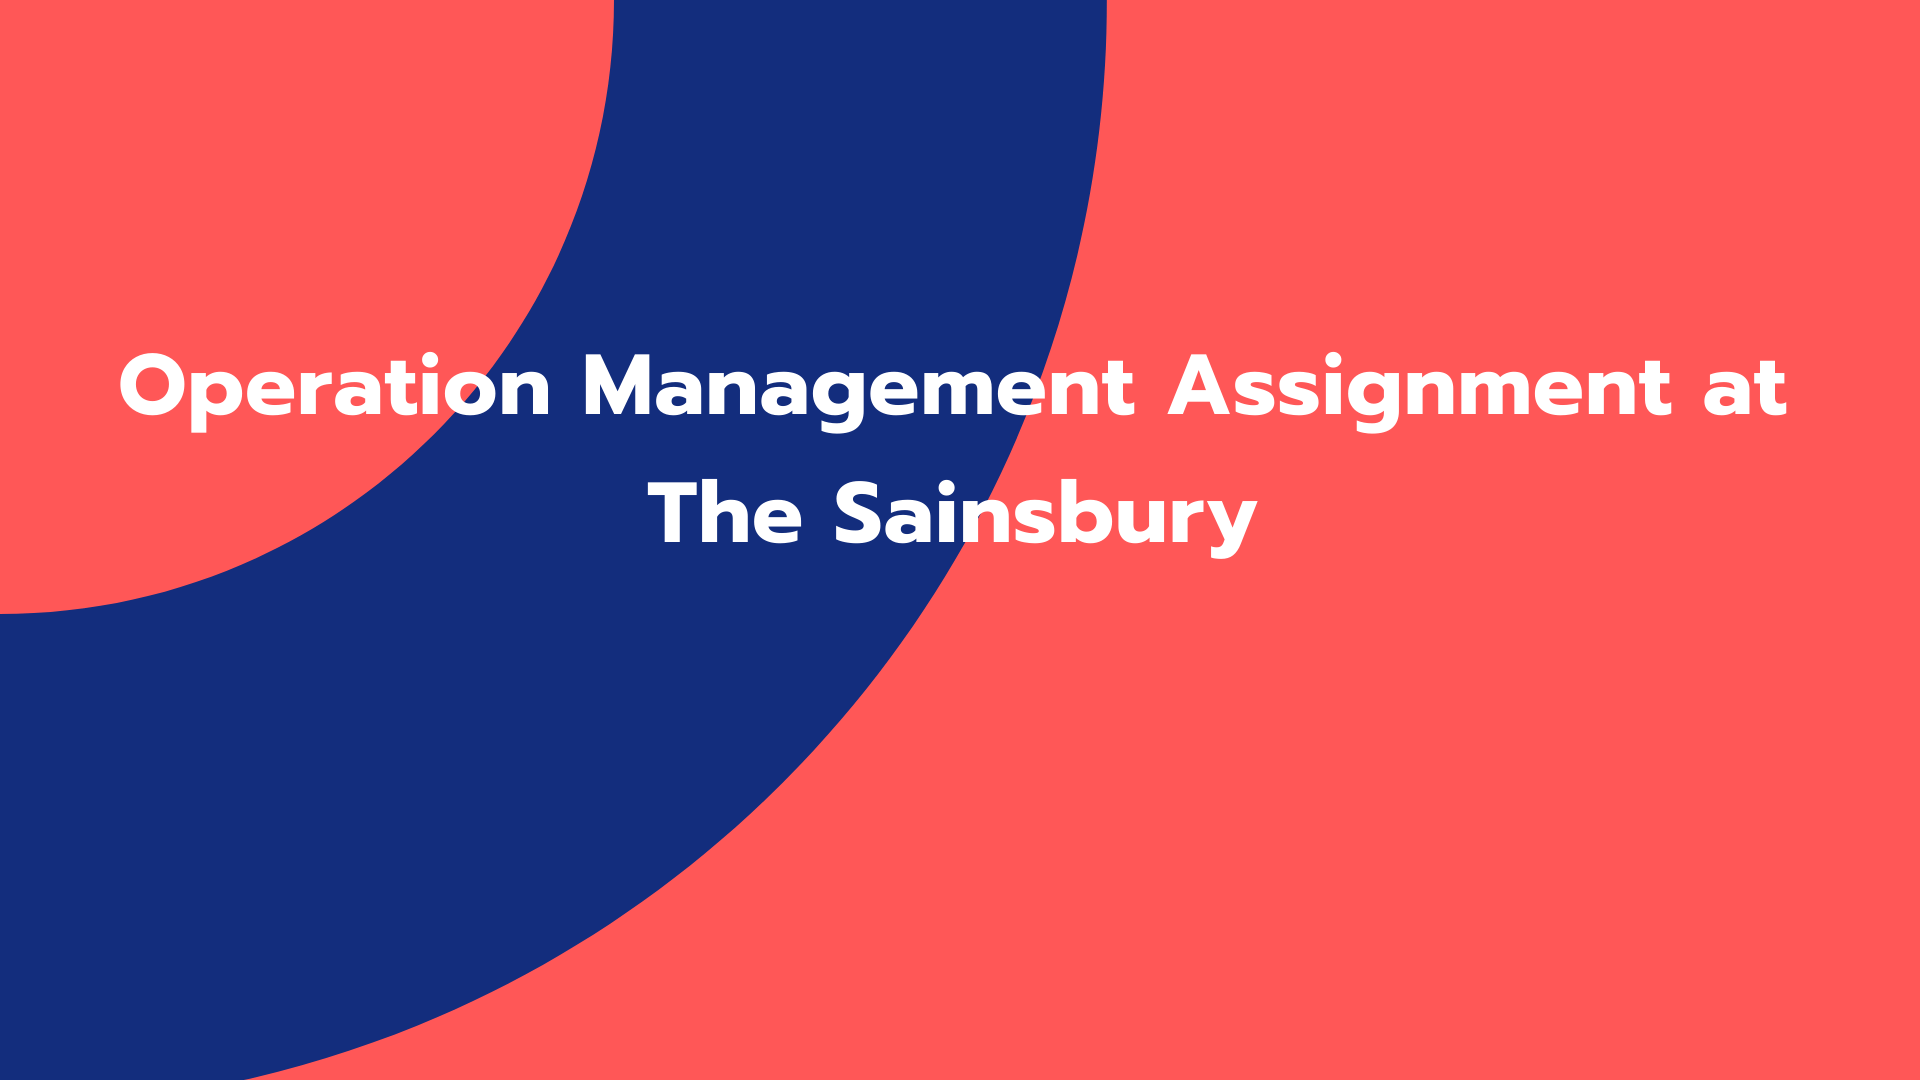 Operation Management Assignment at The Sainsbury